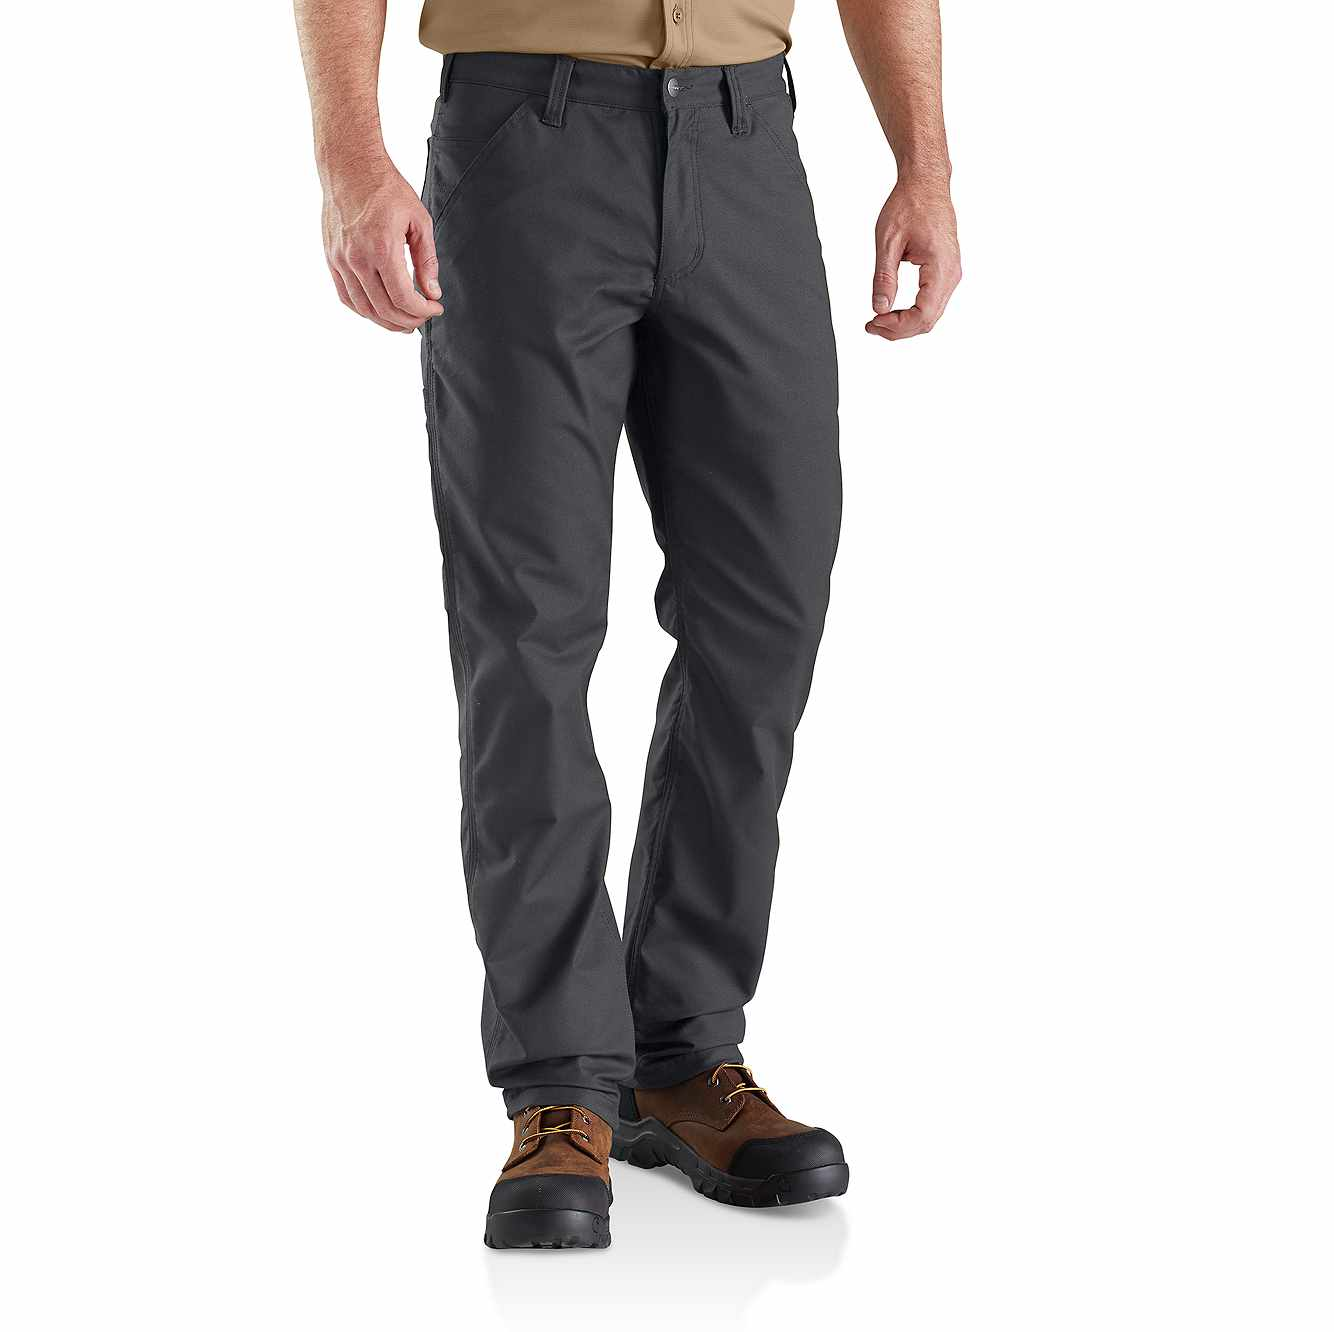 Picture of Rugged Professional™ Series Men's Relaxed Fit Pant in Shadow